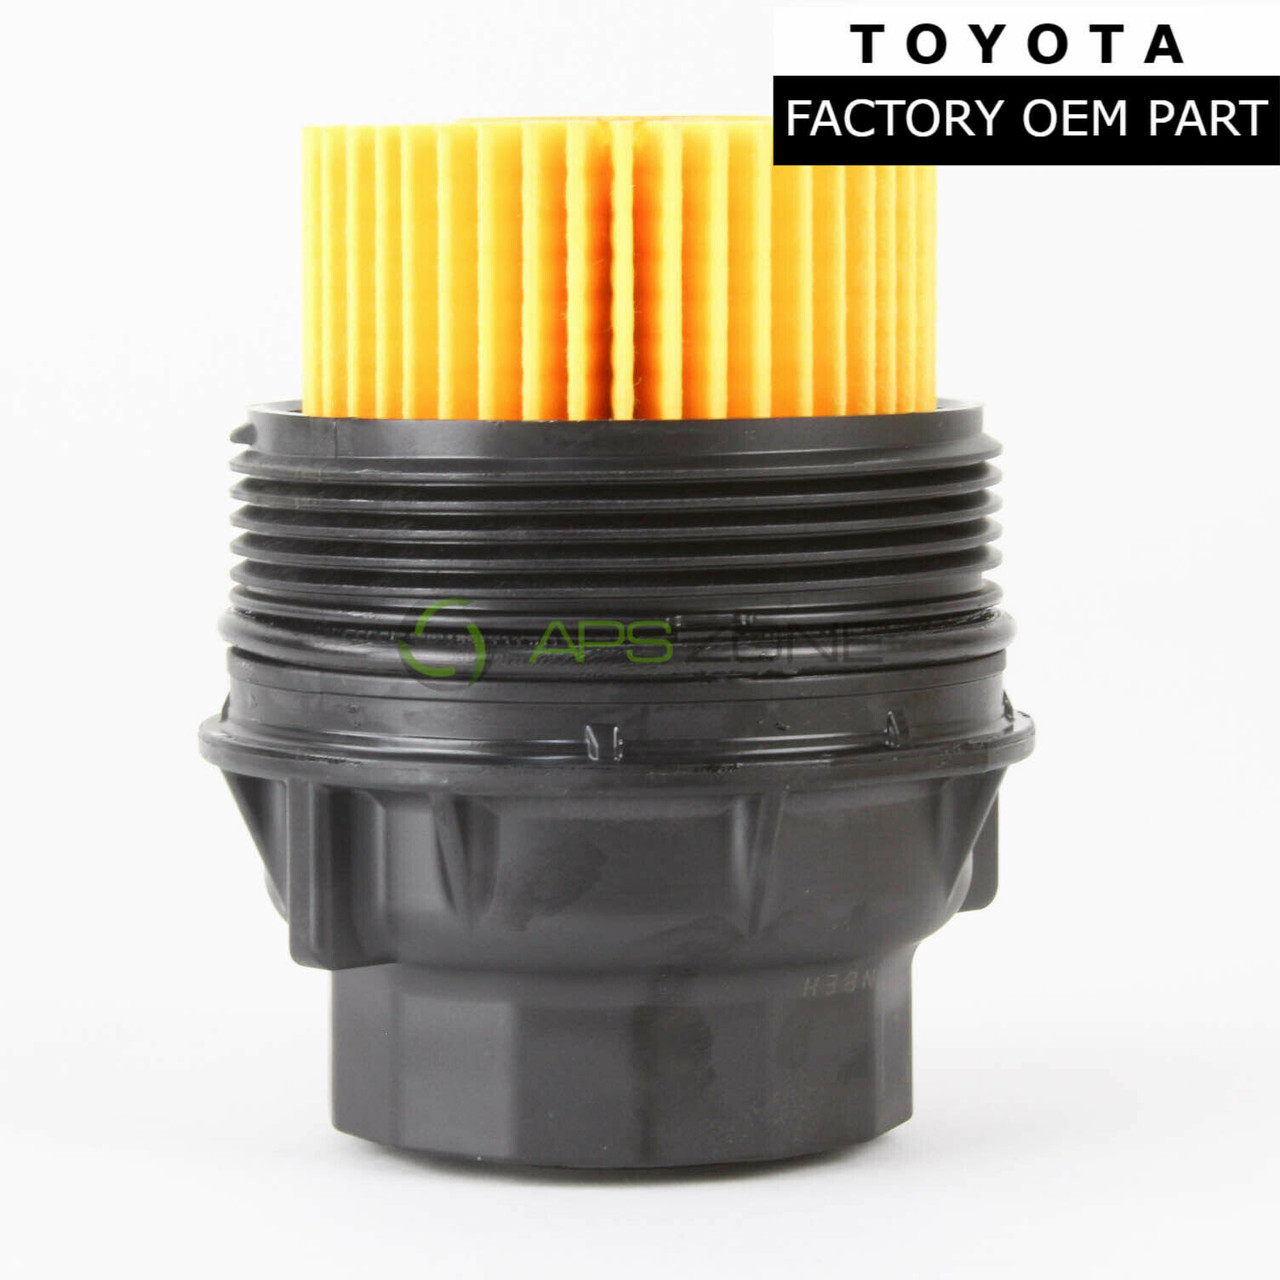 X AUTOHAUX Black Oil Filter Cap Cover 15650-38020 Replacement for Toyota 4Runner FJ Tundra for Lexus